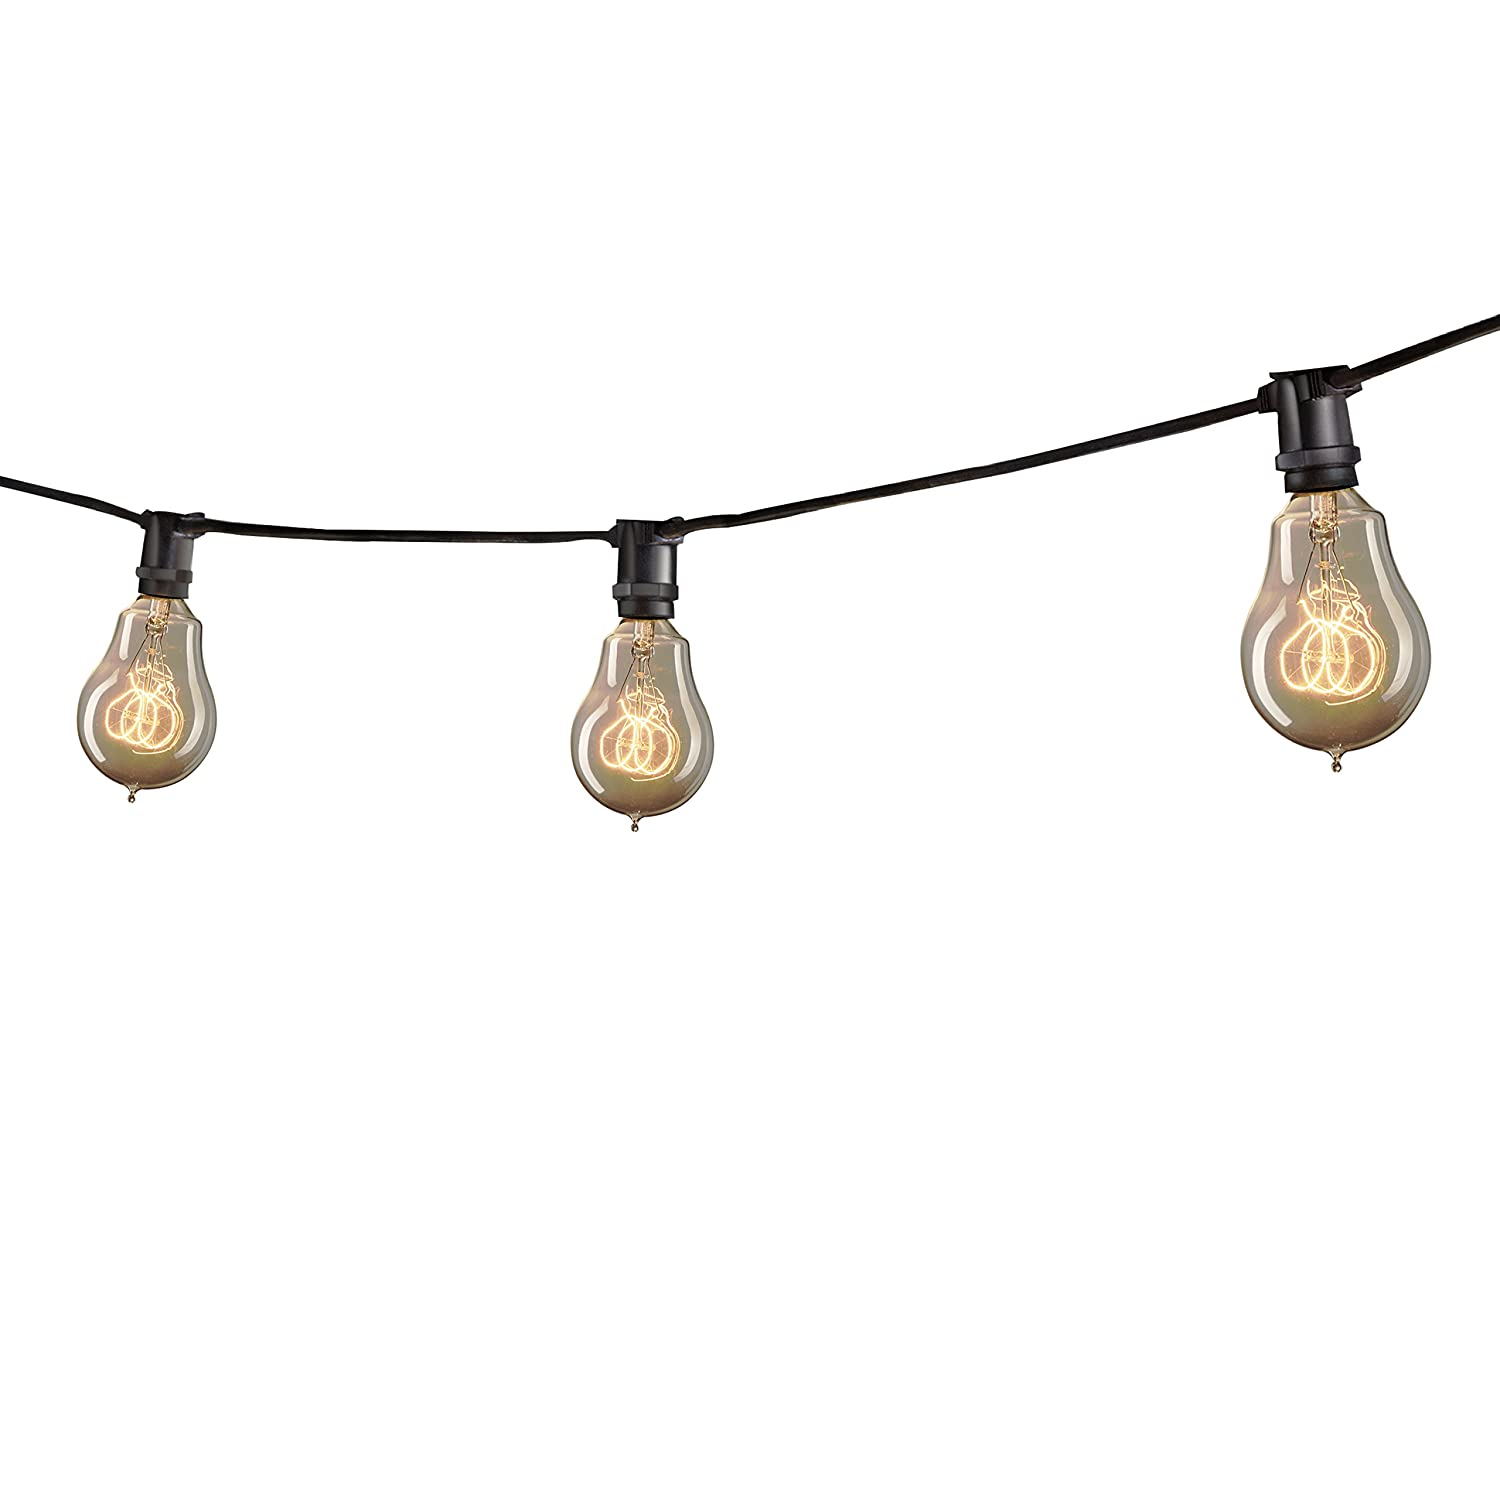 Bulbrite string15e12black nosa15kt outdoor mini string light w bulbrite string15e12black nosa15kt outdoor mini string light wvintage edison bulbs 25 feet 15 lights sockets black amazon mozeypictures Choice Image